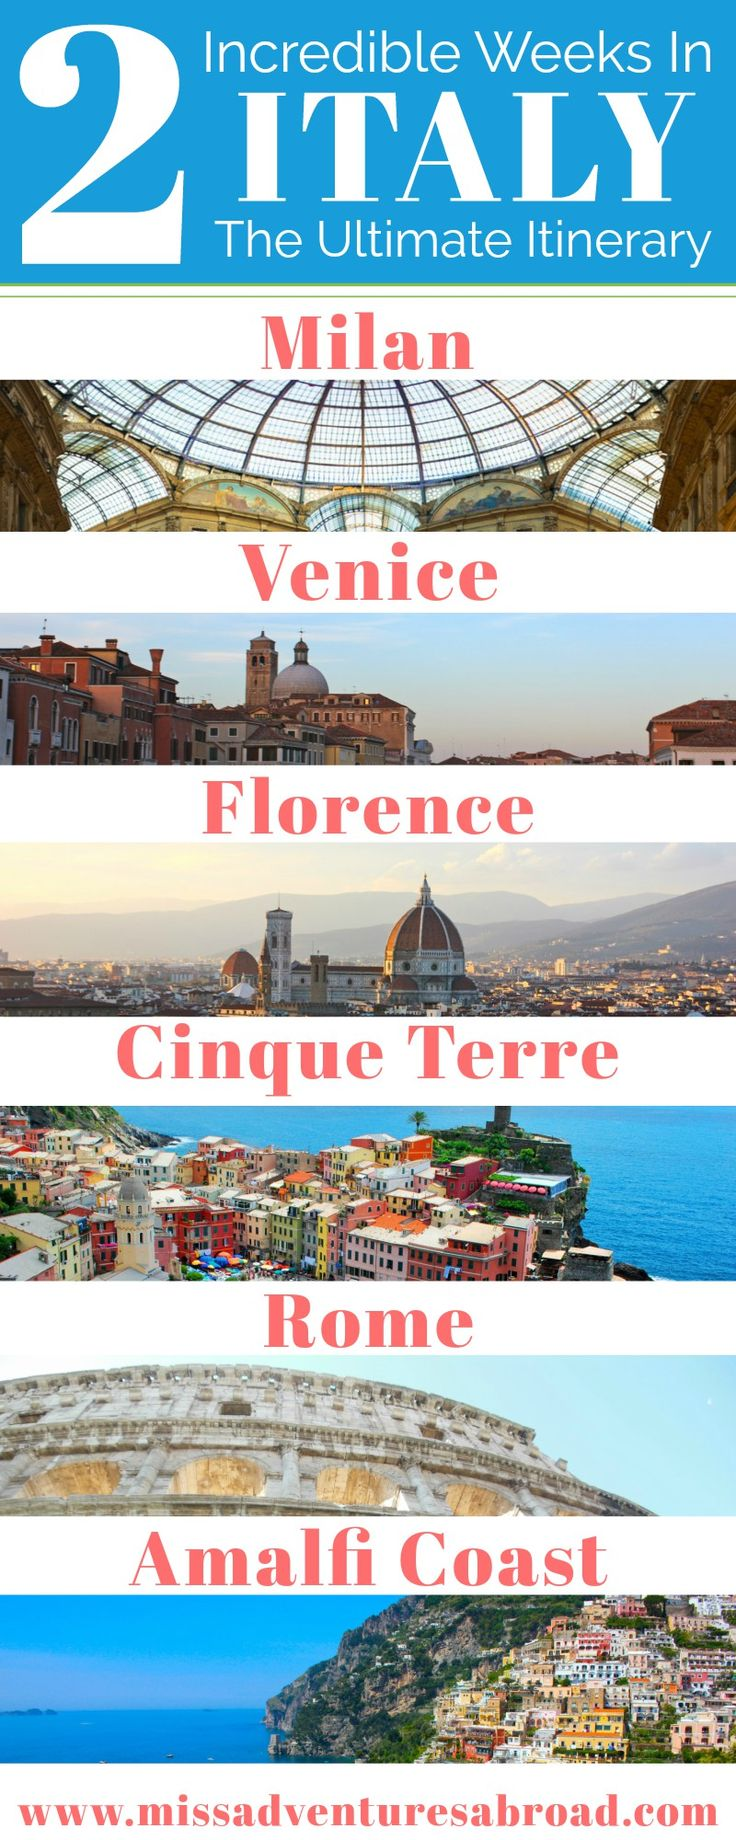 Two Incredible Weeks In Italy: The Complete Itinerary | Miss Adventures Abroad